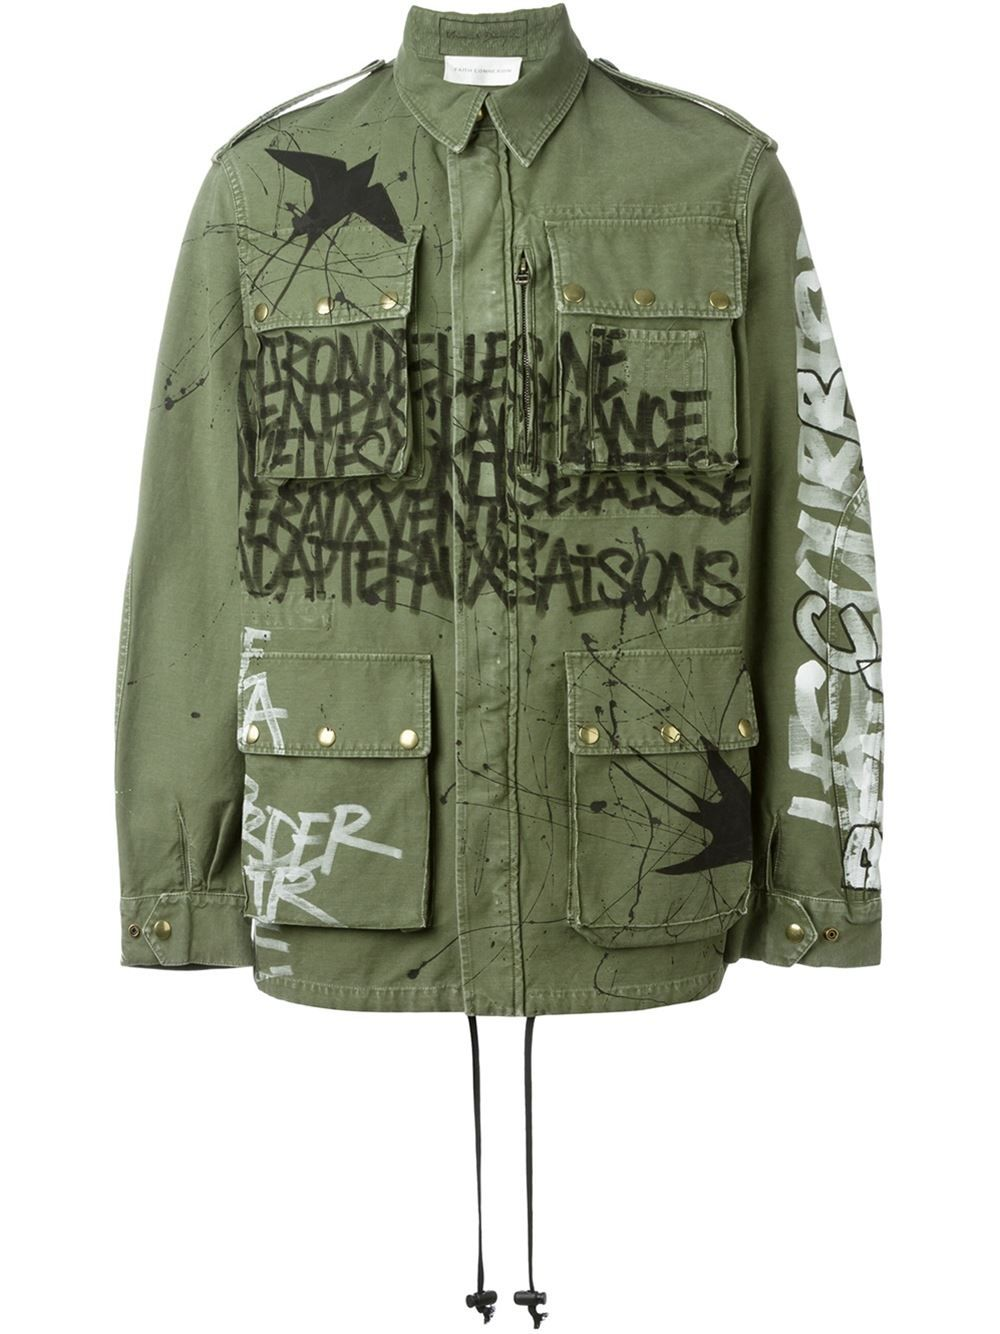 Faith Connexion graffiti print cargo jacket